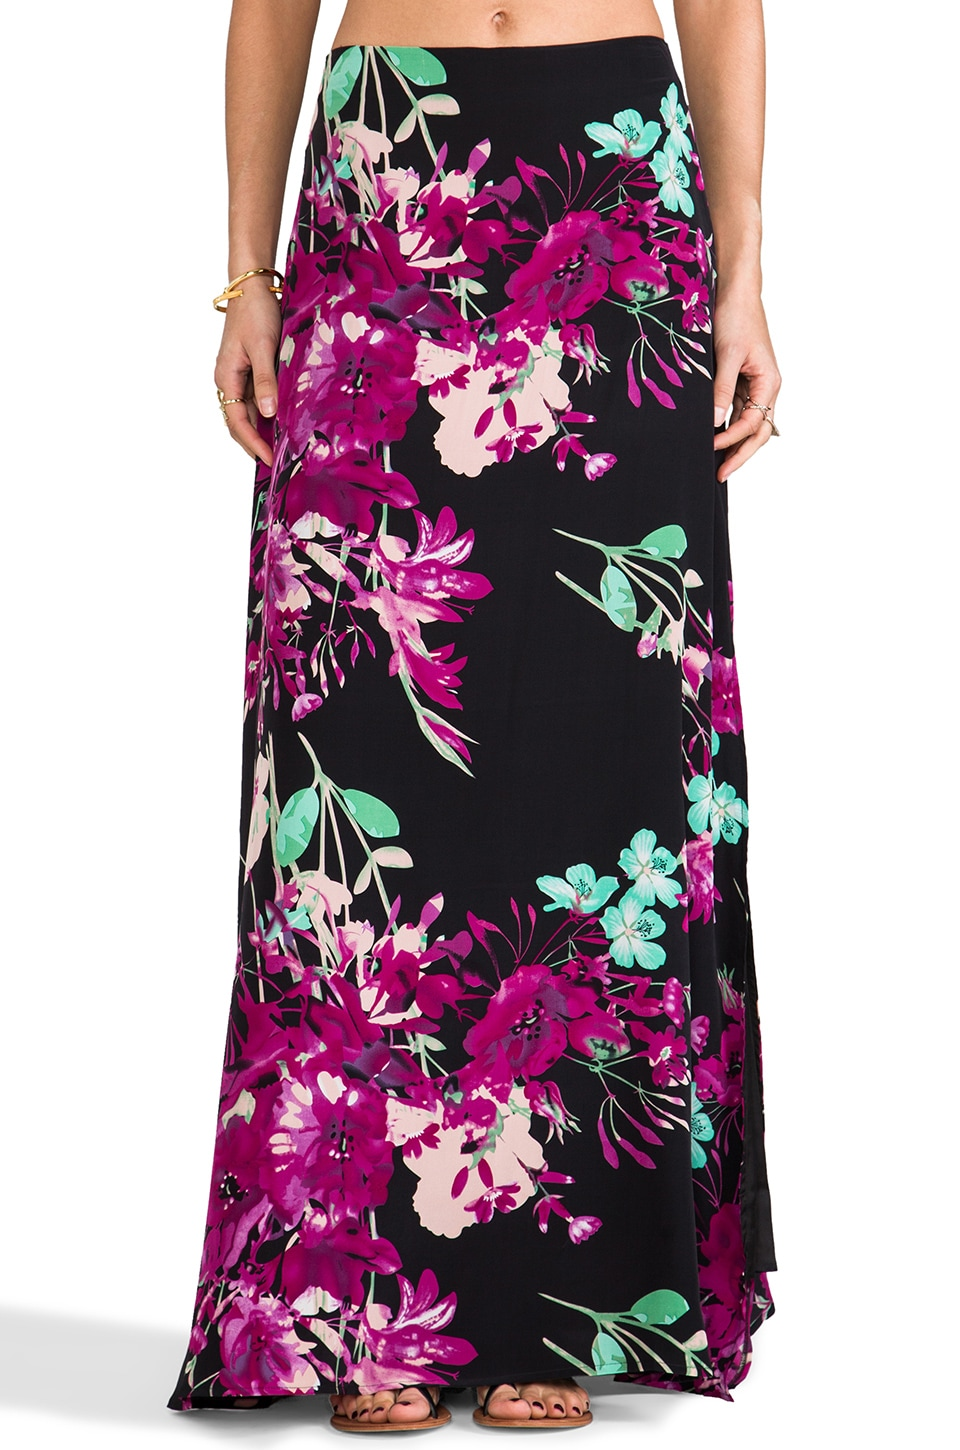 Yumi Kim Arial Maxi Skirt in Black Botanical